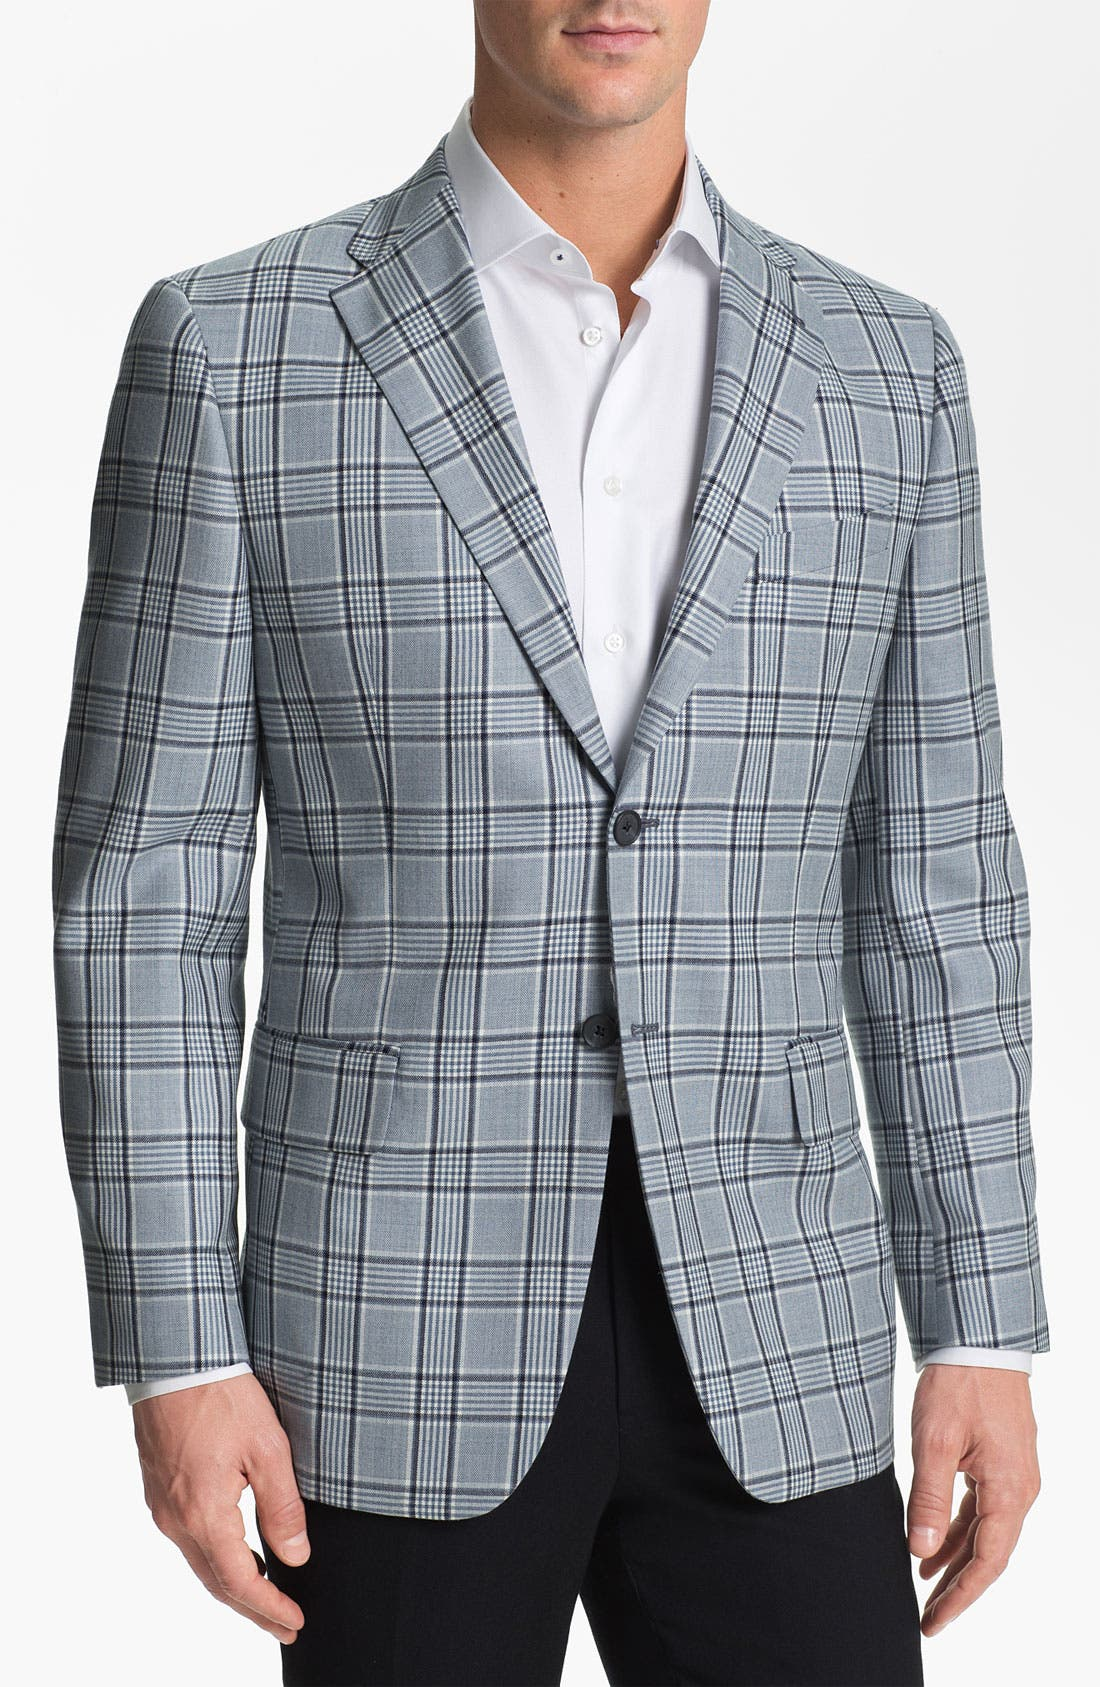 Alternate Image 1 Selected - Joseph Abboud Plaid Sportcoat